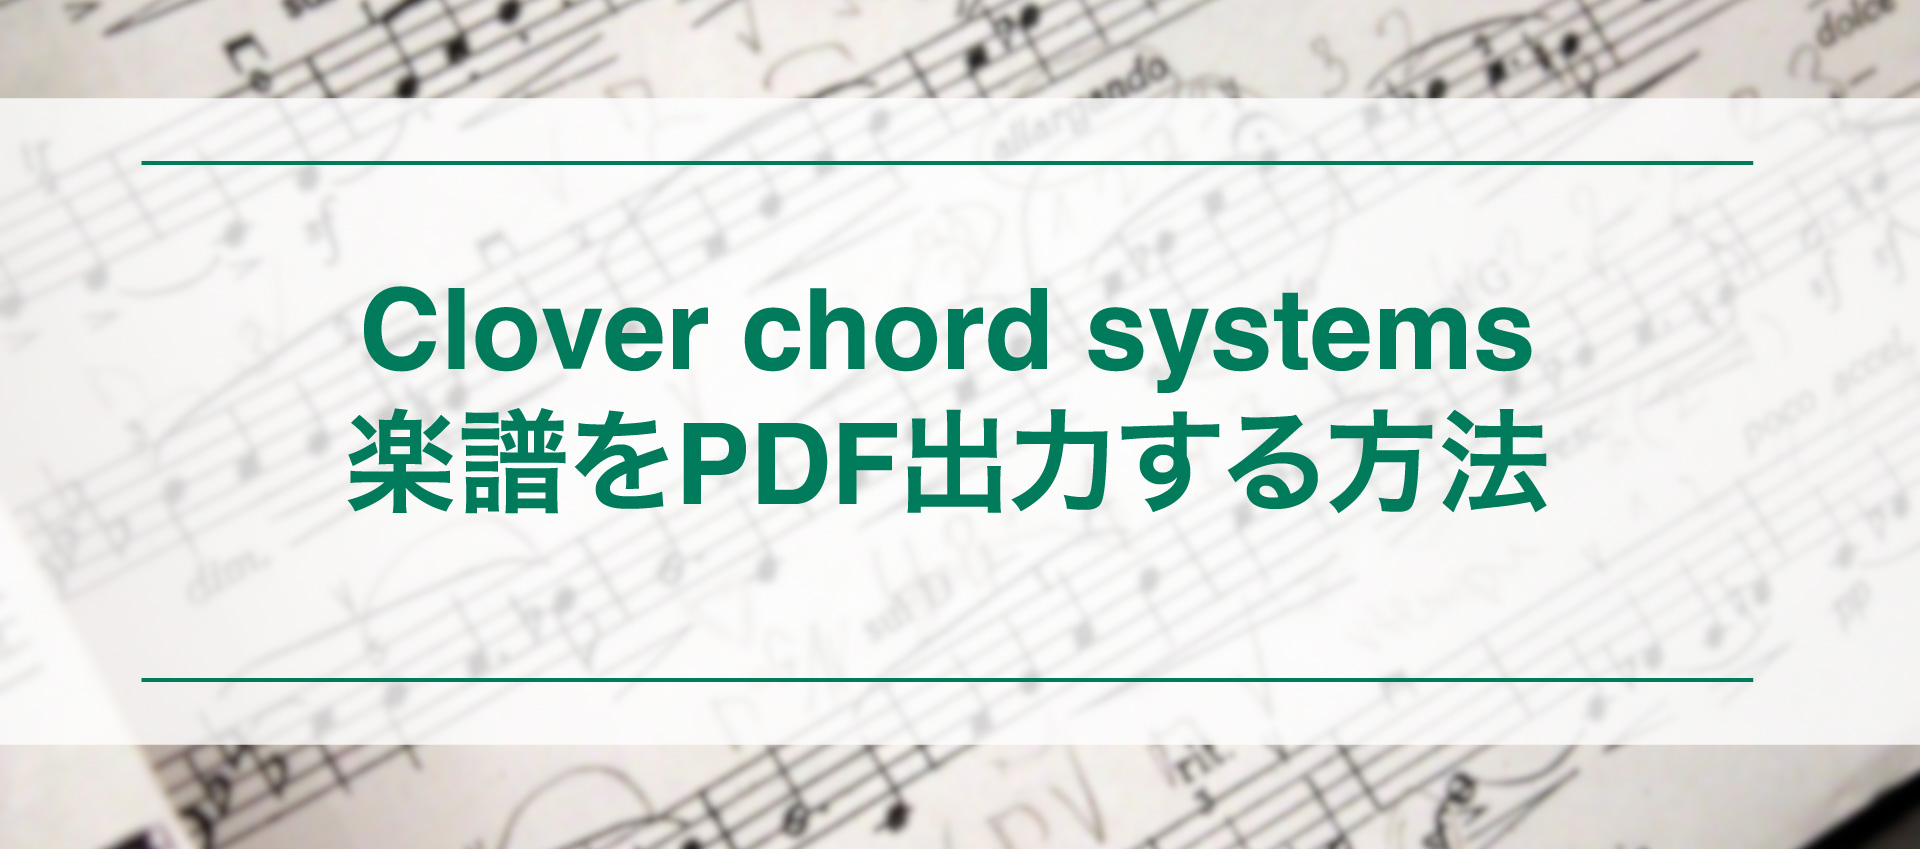 clover chord systems